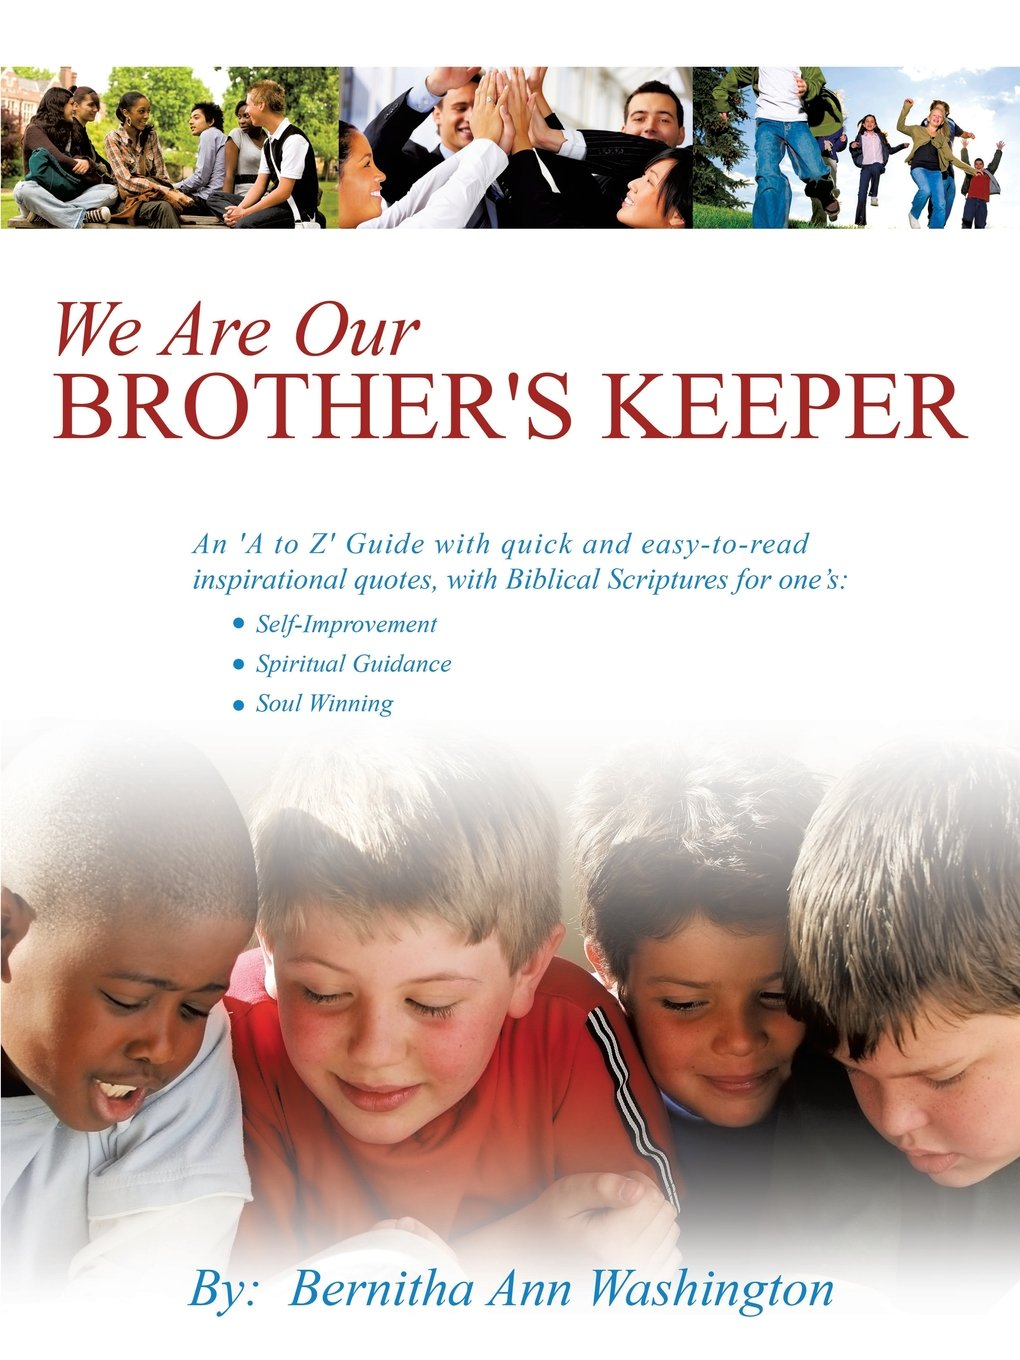 We Are Our Brothers Keeper Bernitha Ann Washington 9781606470978